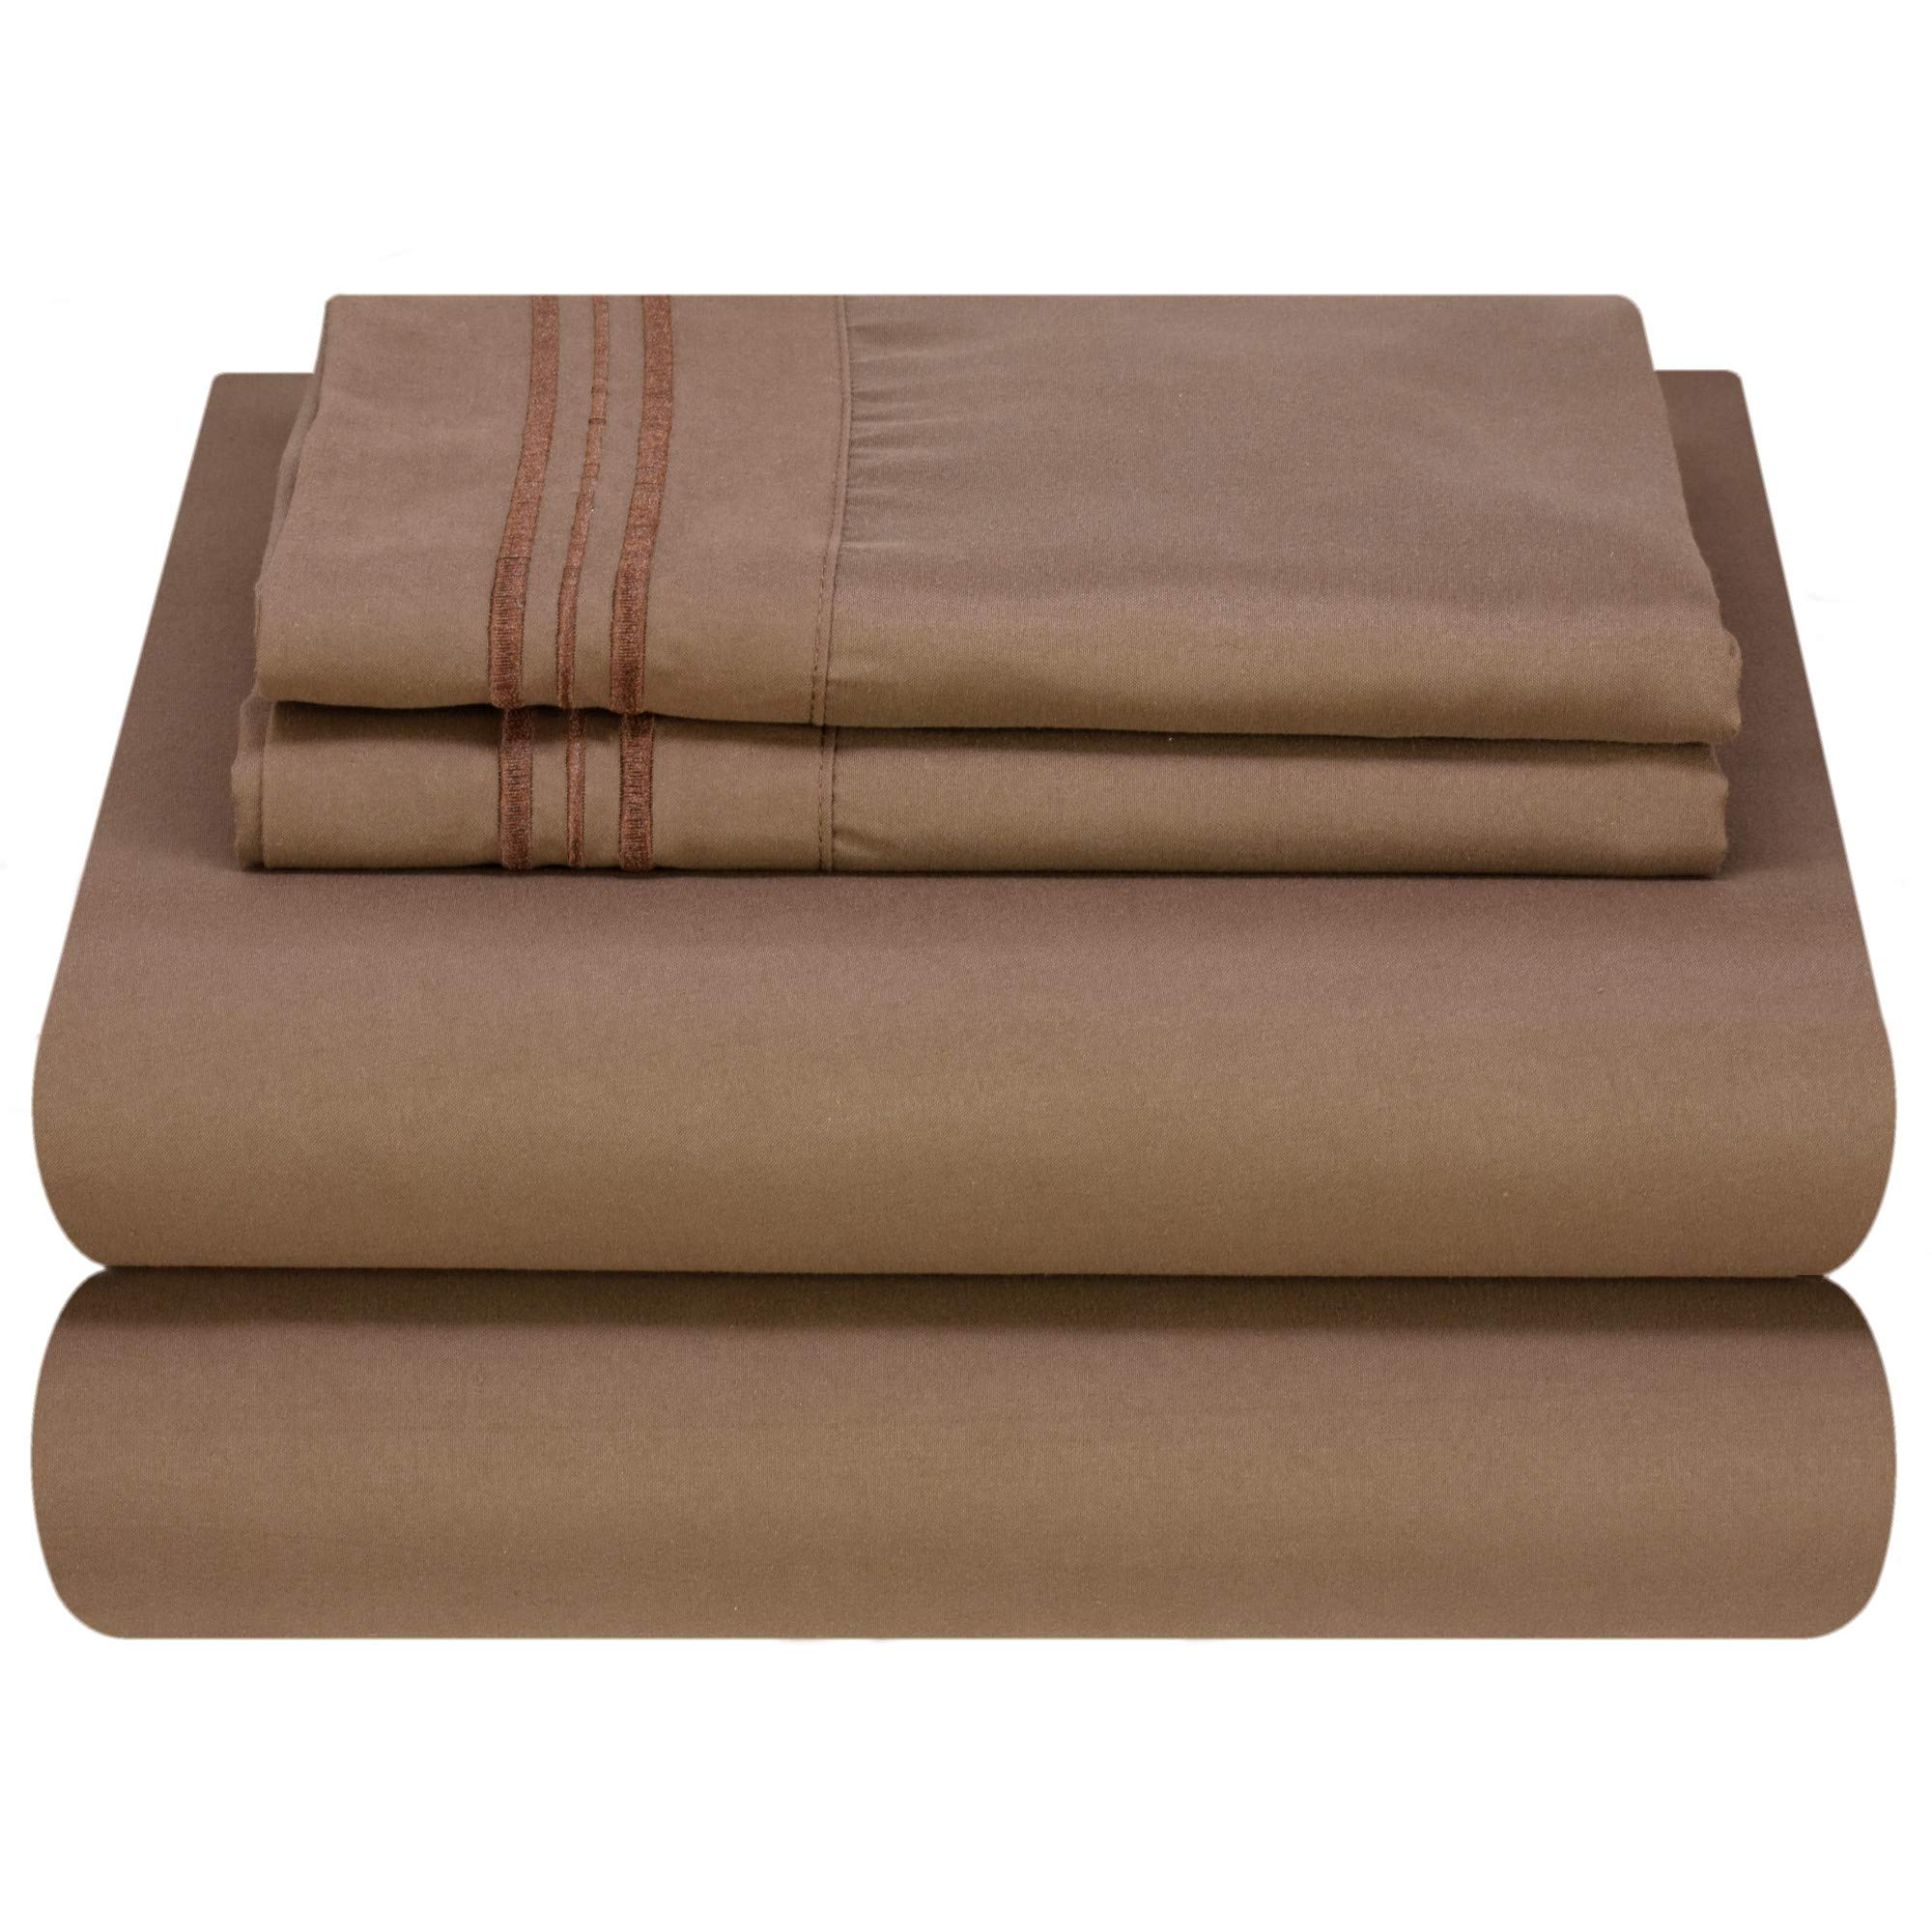 Mezzati Luxury Bed Sheet Set - Soft and Comfortable 1800 Prestige Collection - Brushed Microfiber Bedding (Brown, Twin XL Size)